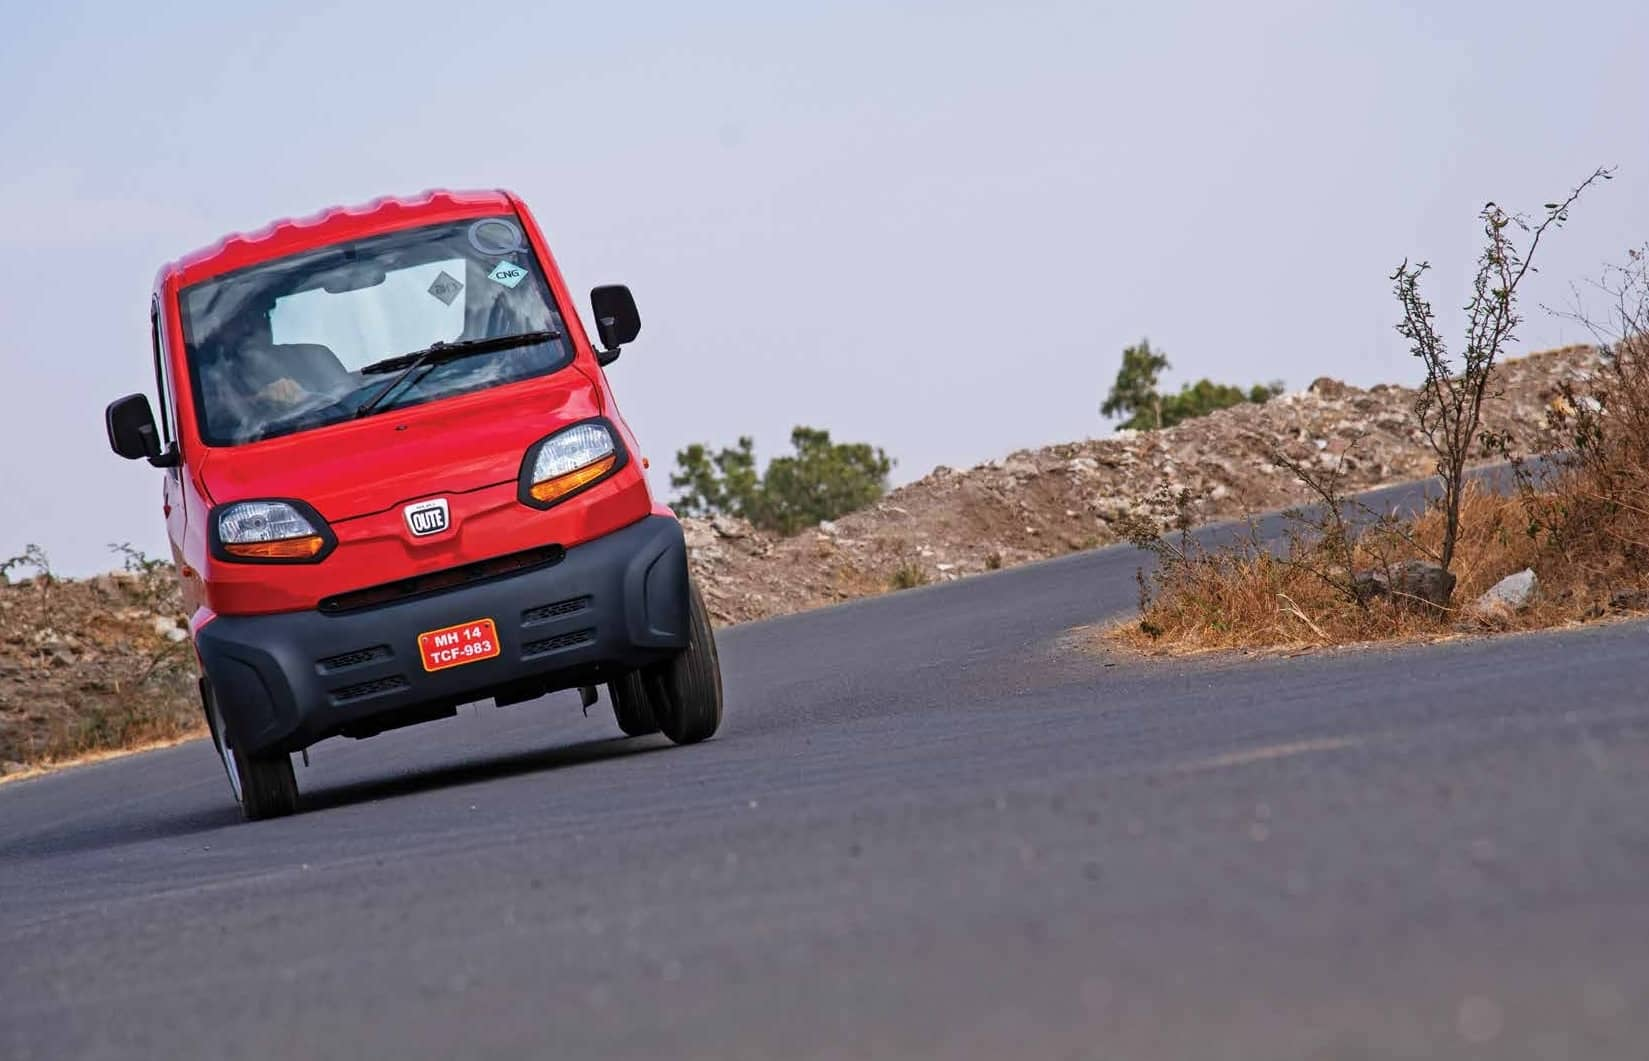 Bajaj Qute - First-Of-Its-Kind Qute In India